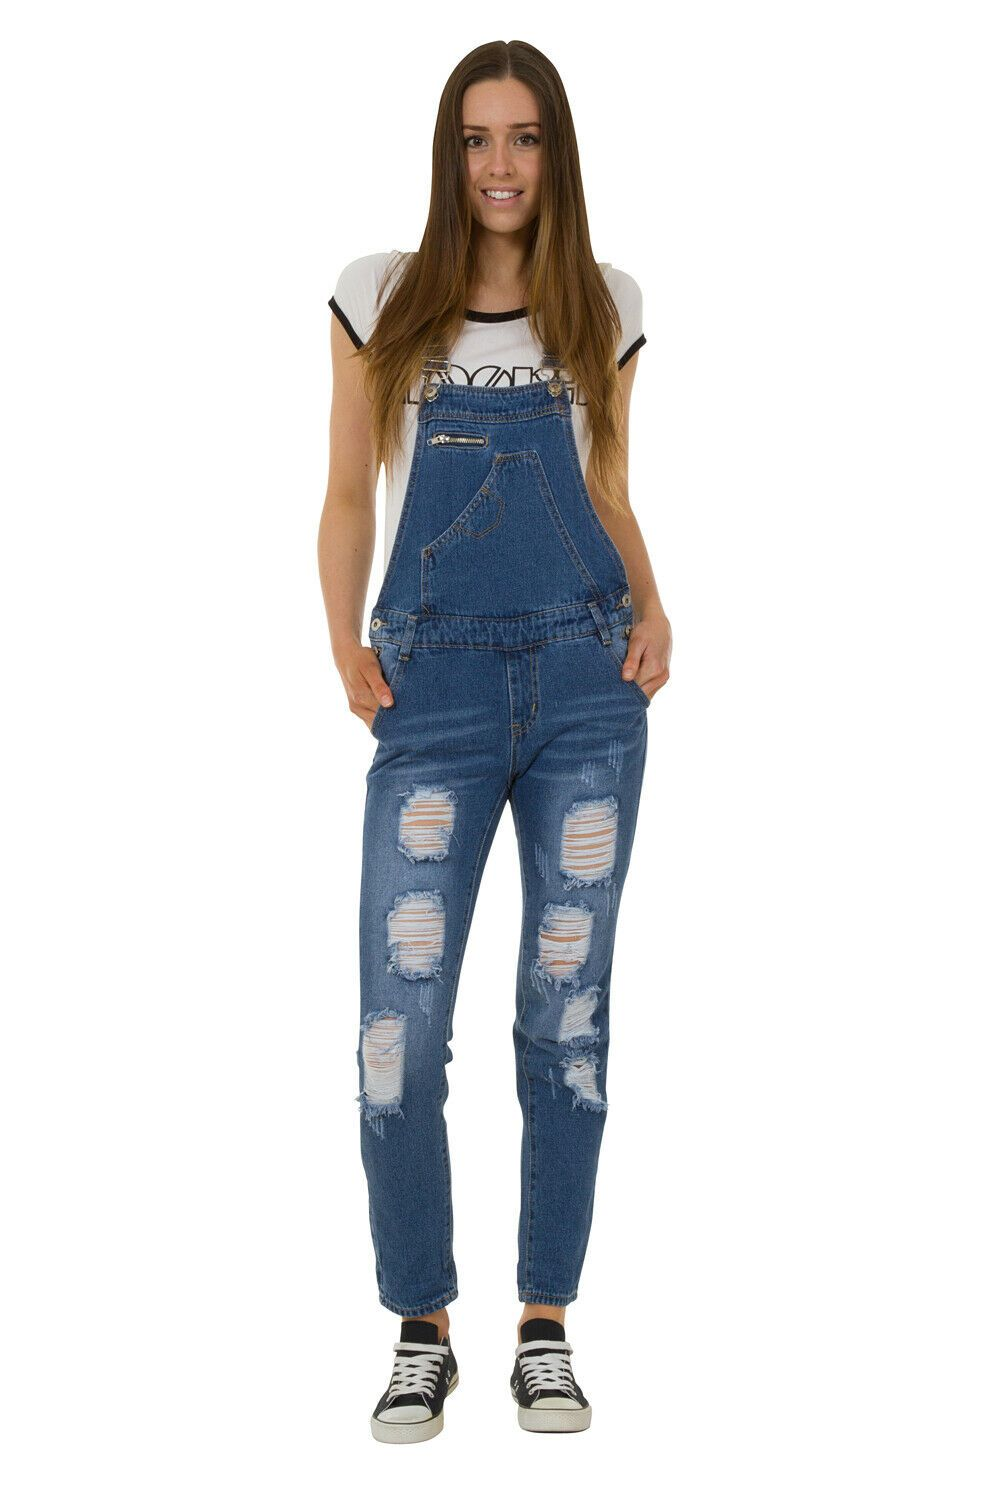 Full frontal pose with hands in front pockets of women's denim dungaree with view of asymmetrical bib pocket, zipper pocket and adjustable straps.